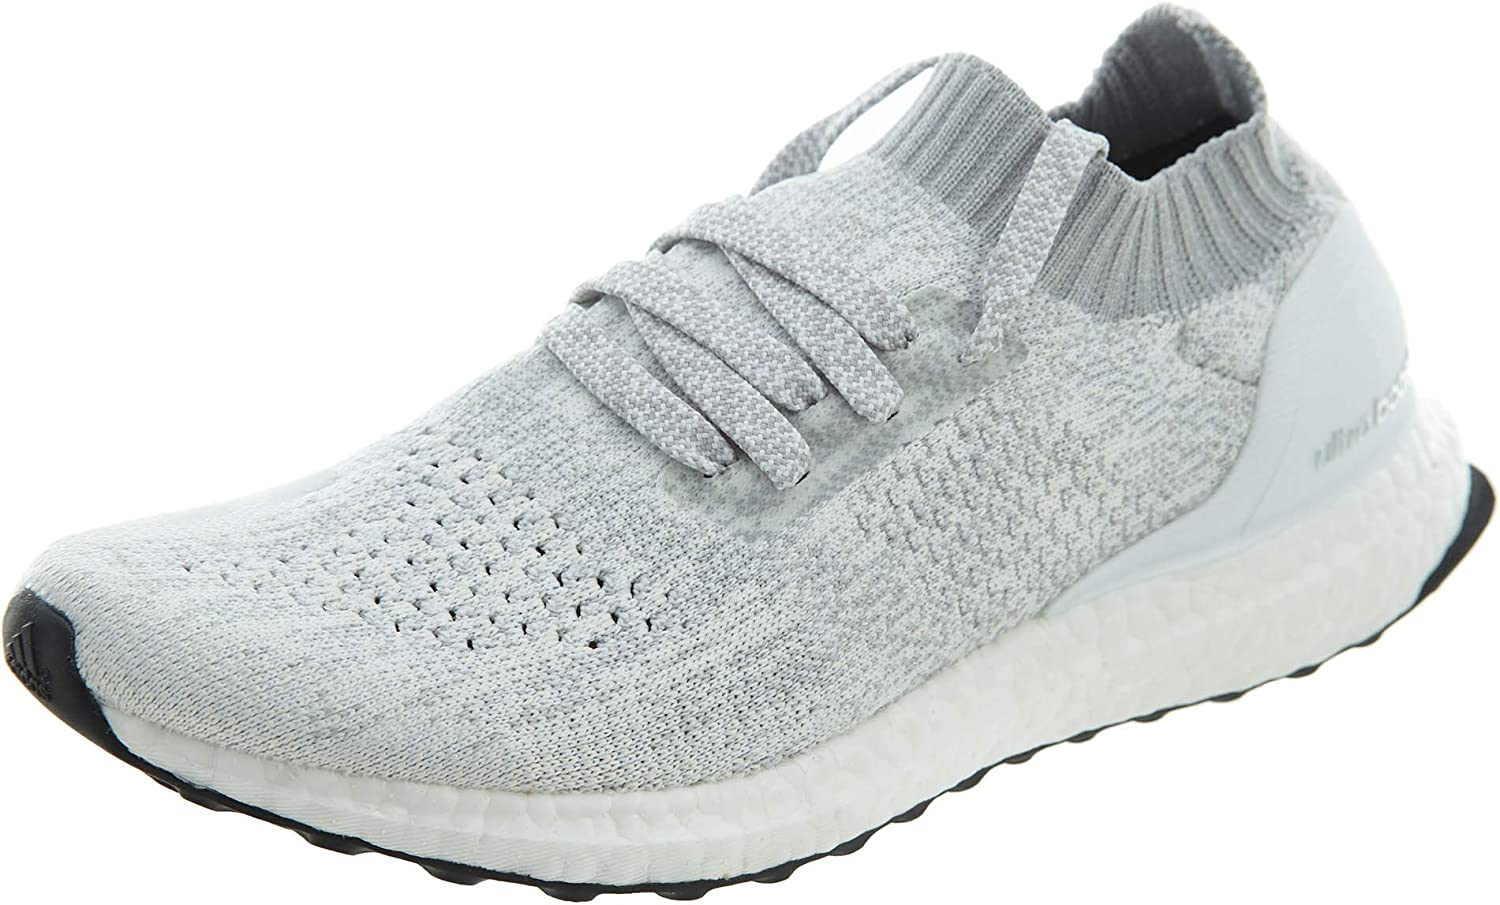 adidas Men's Ultraboost Uncaged Running Shoe White Size 10.5 M US